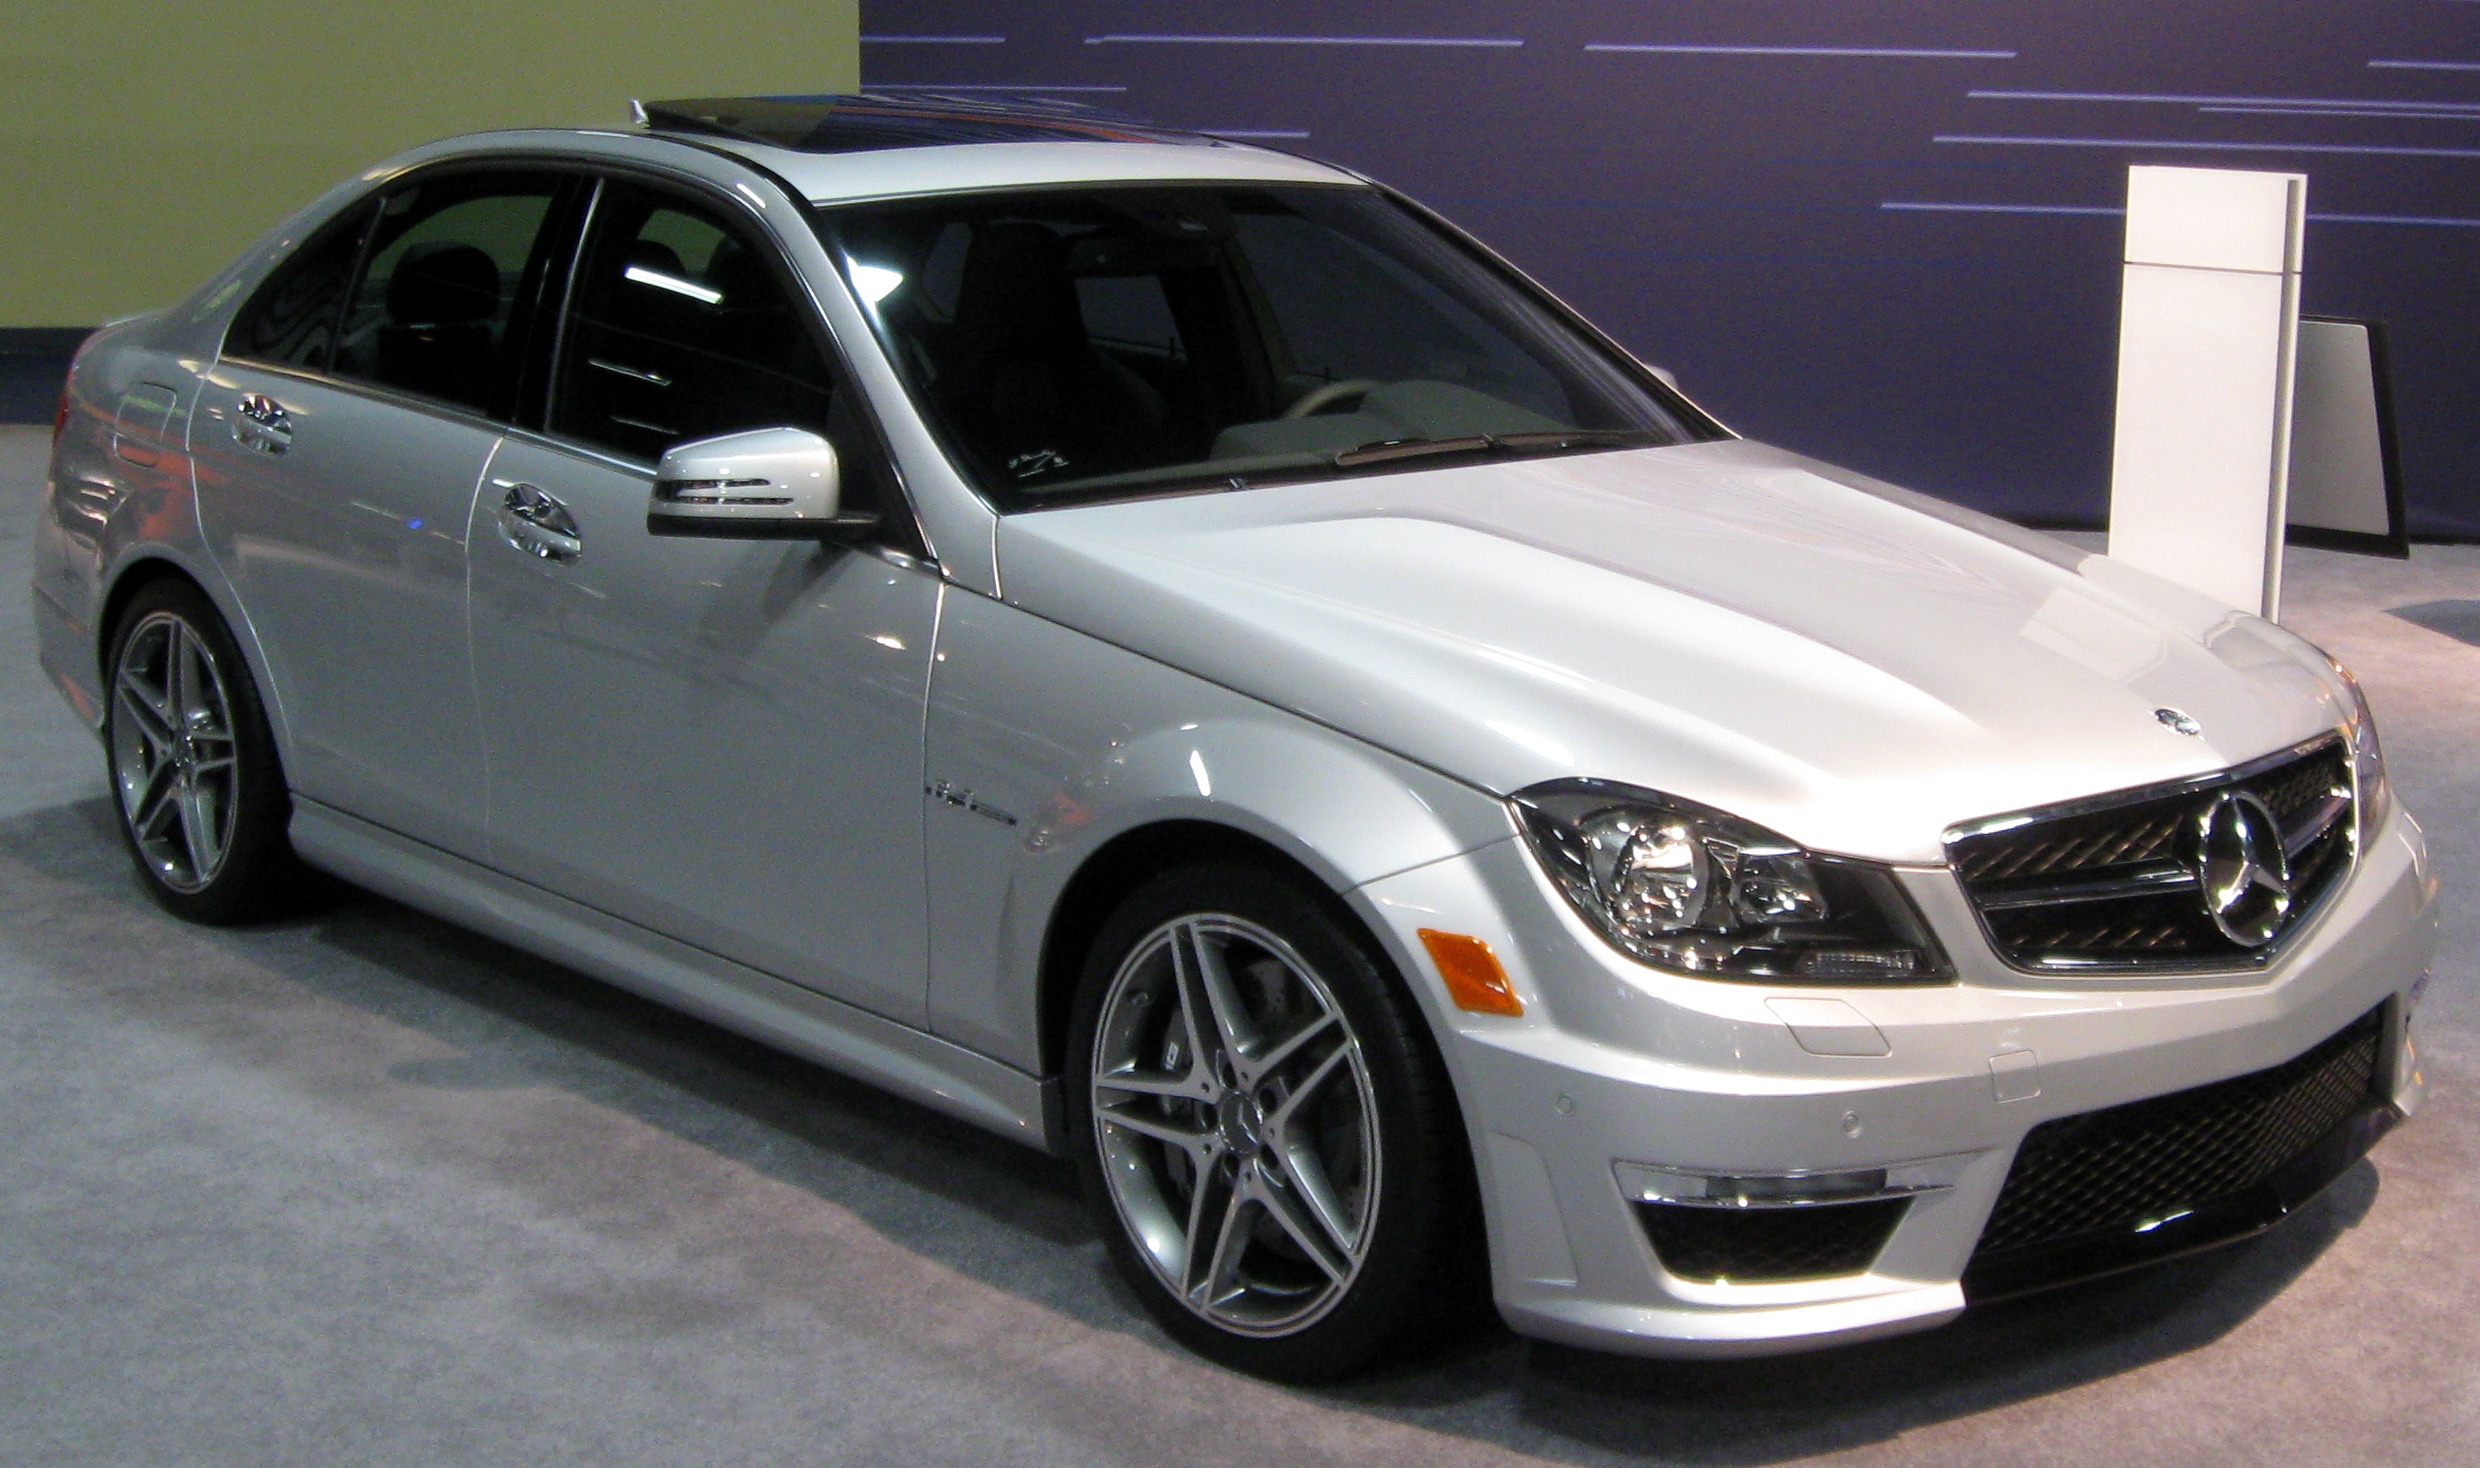 Mercedes Benz C Class 2010 Review Amazing Pictures And Images